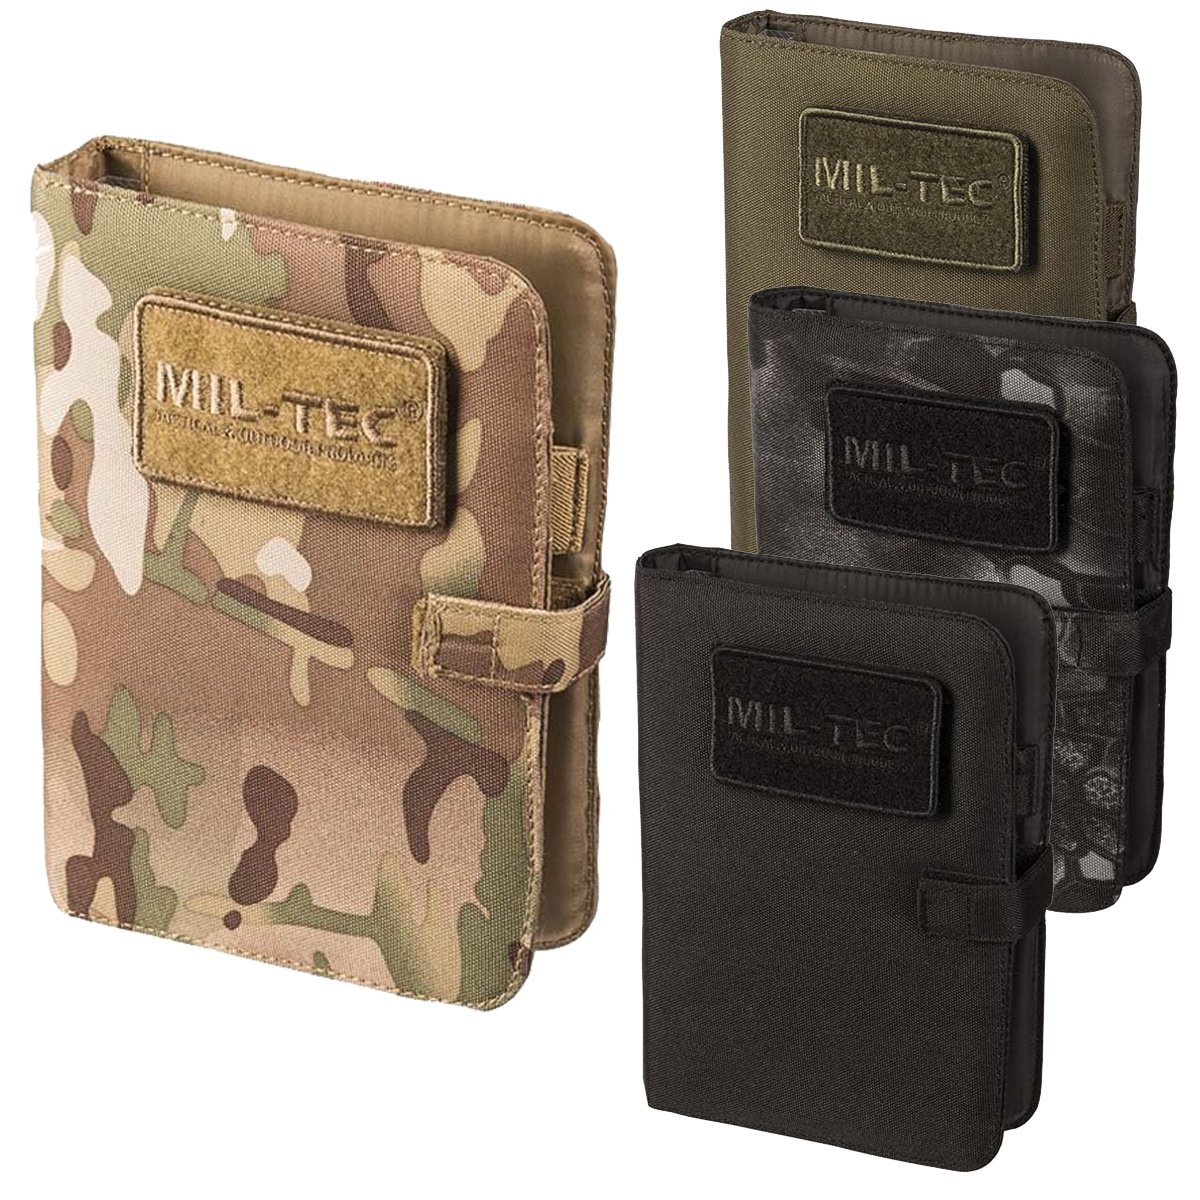 Mil-tec Tactical Notebook Medium Multitarn Notizbuch Notebooktaschen Taschen